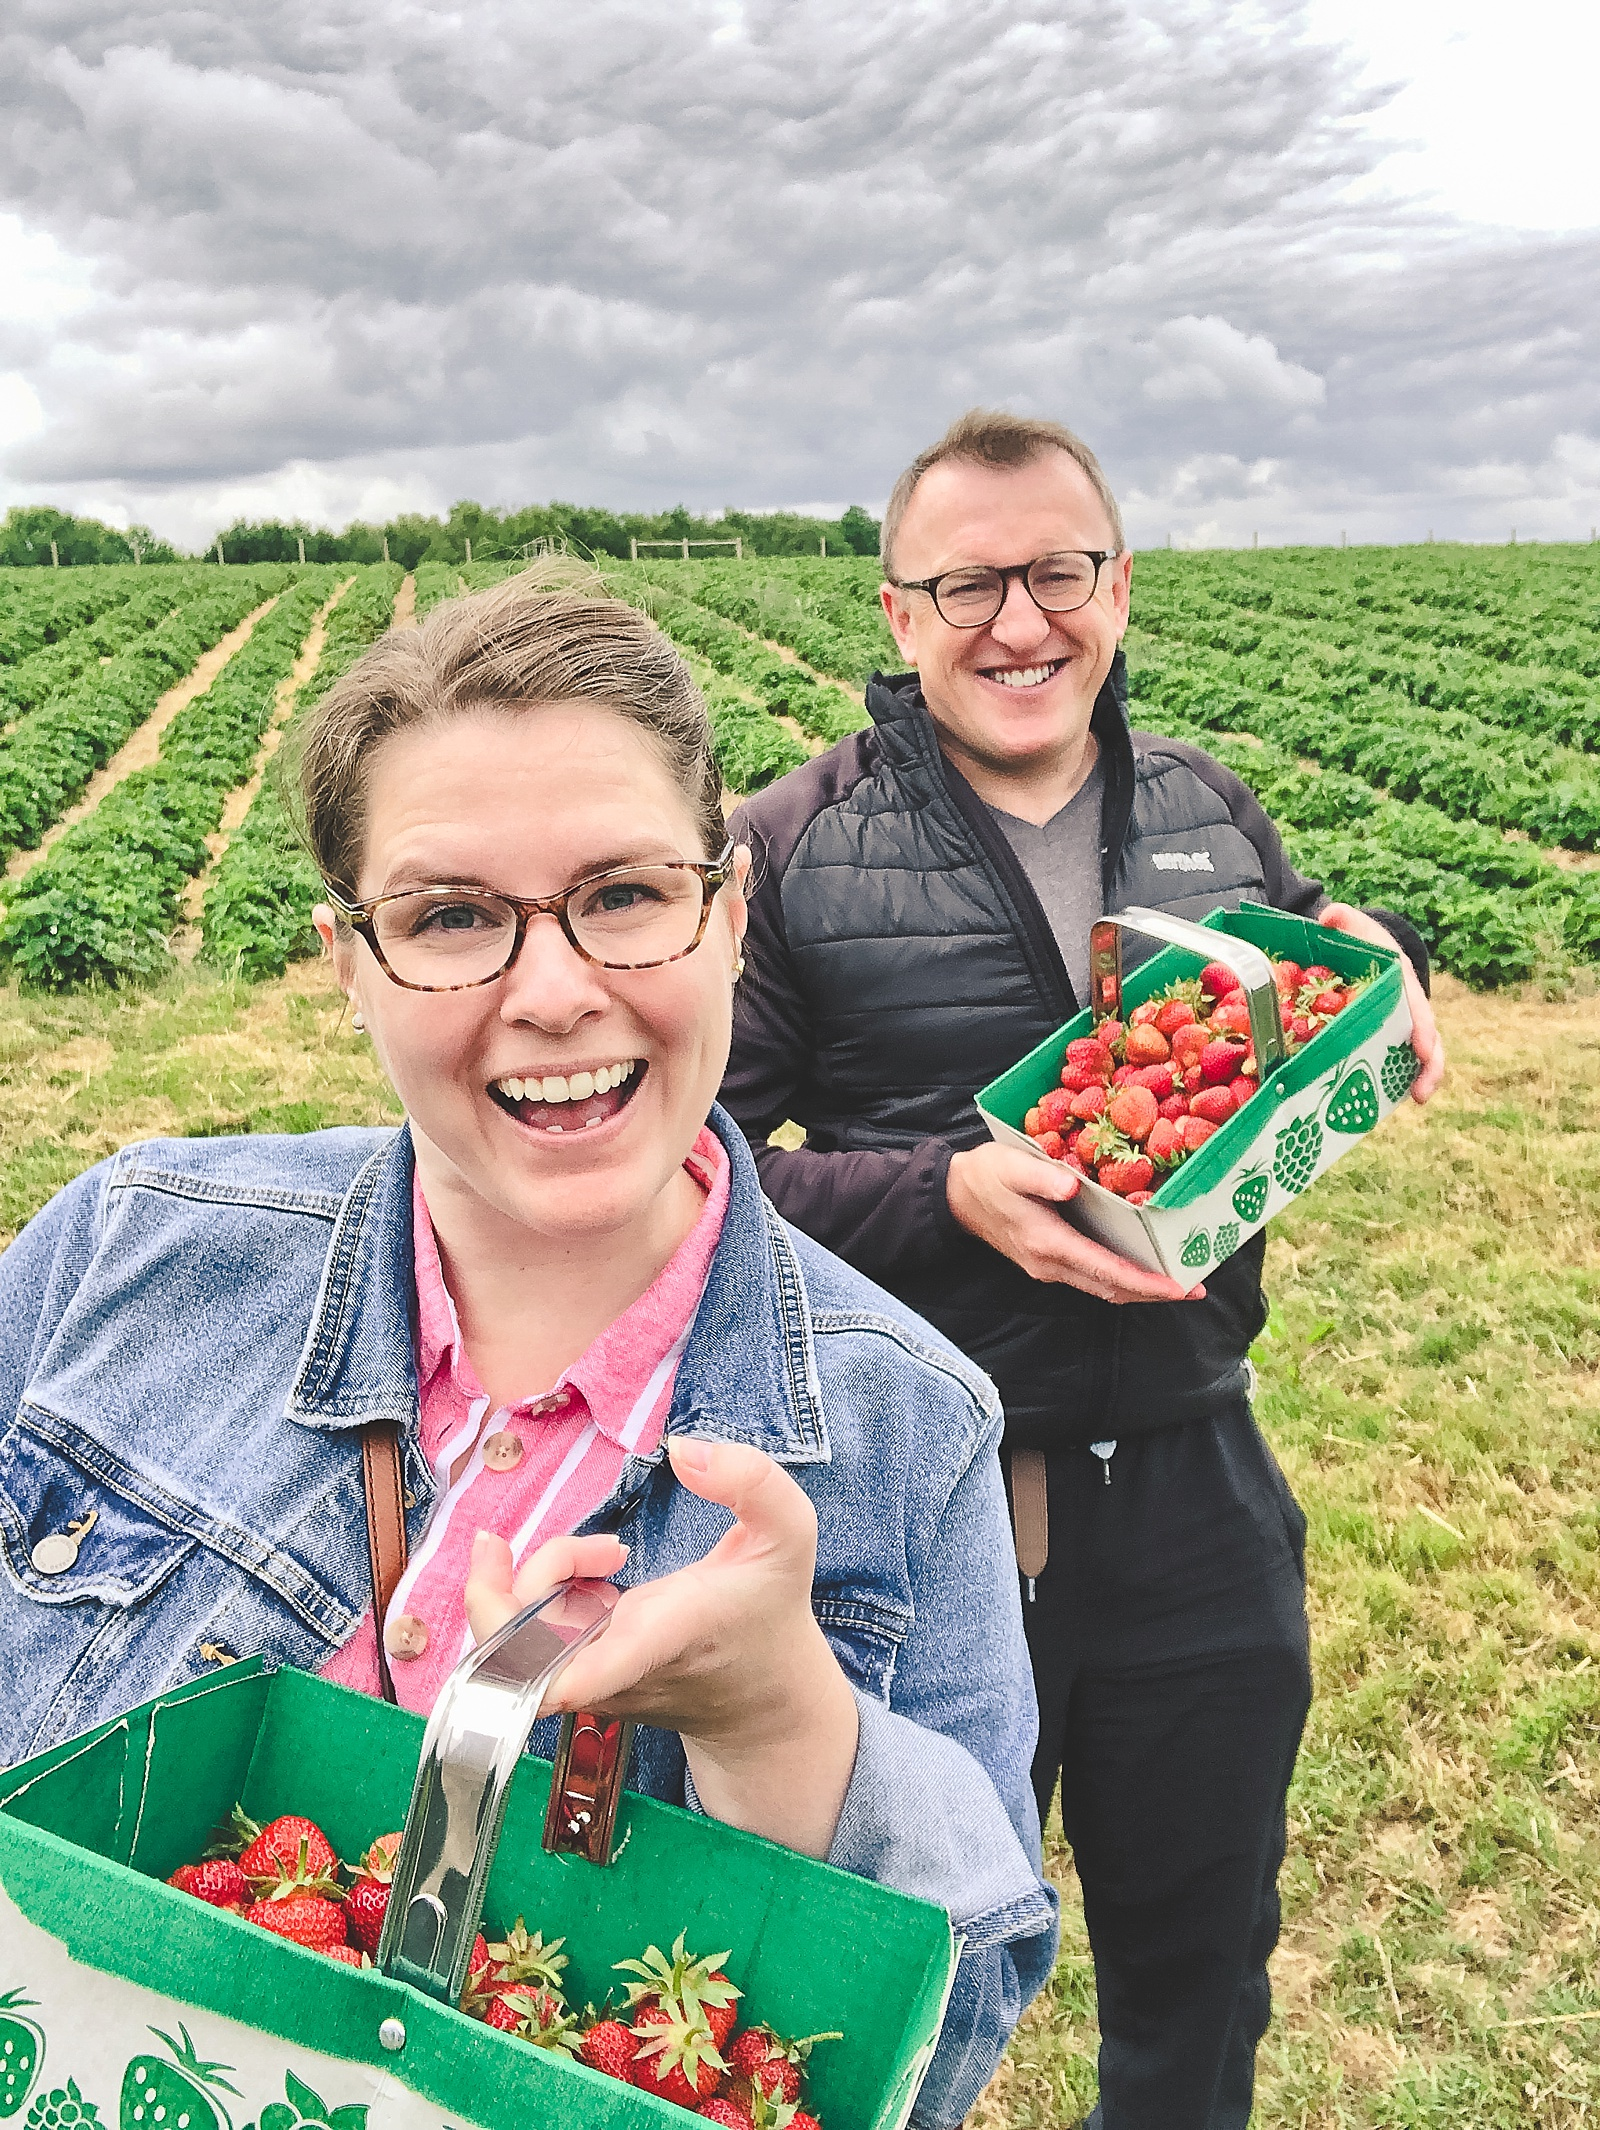 New House Farm Shop Strawberry Picking in Southern England